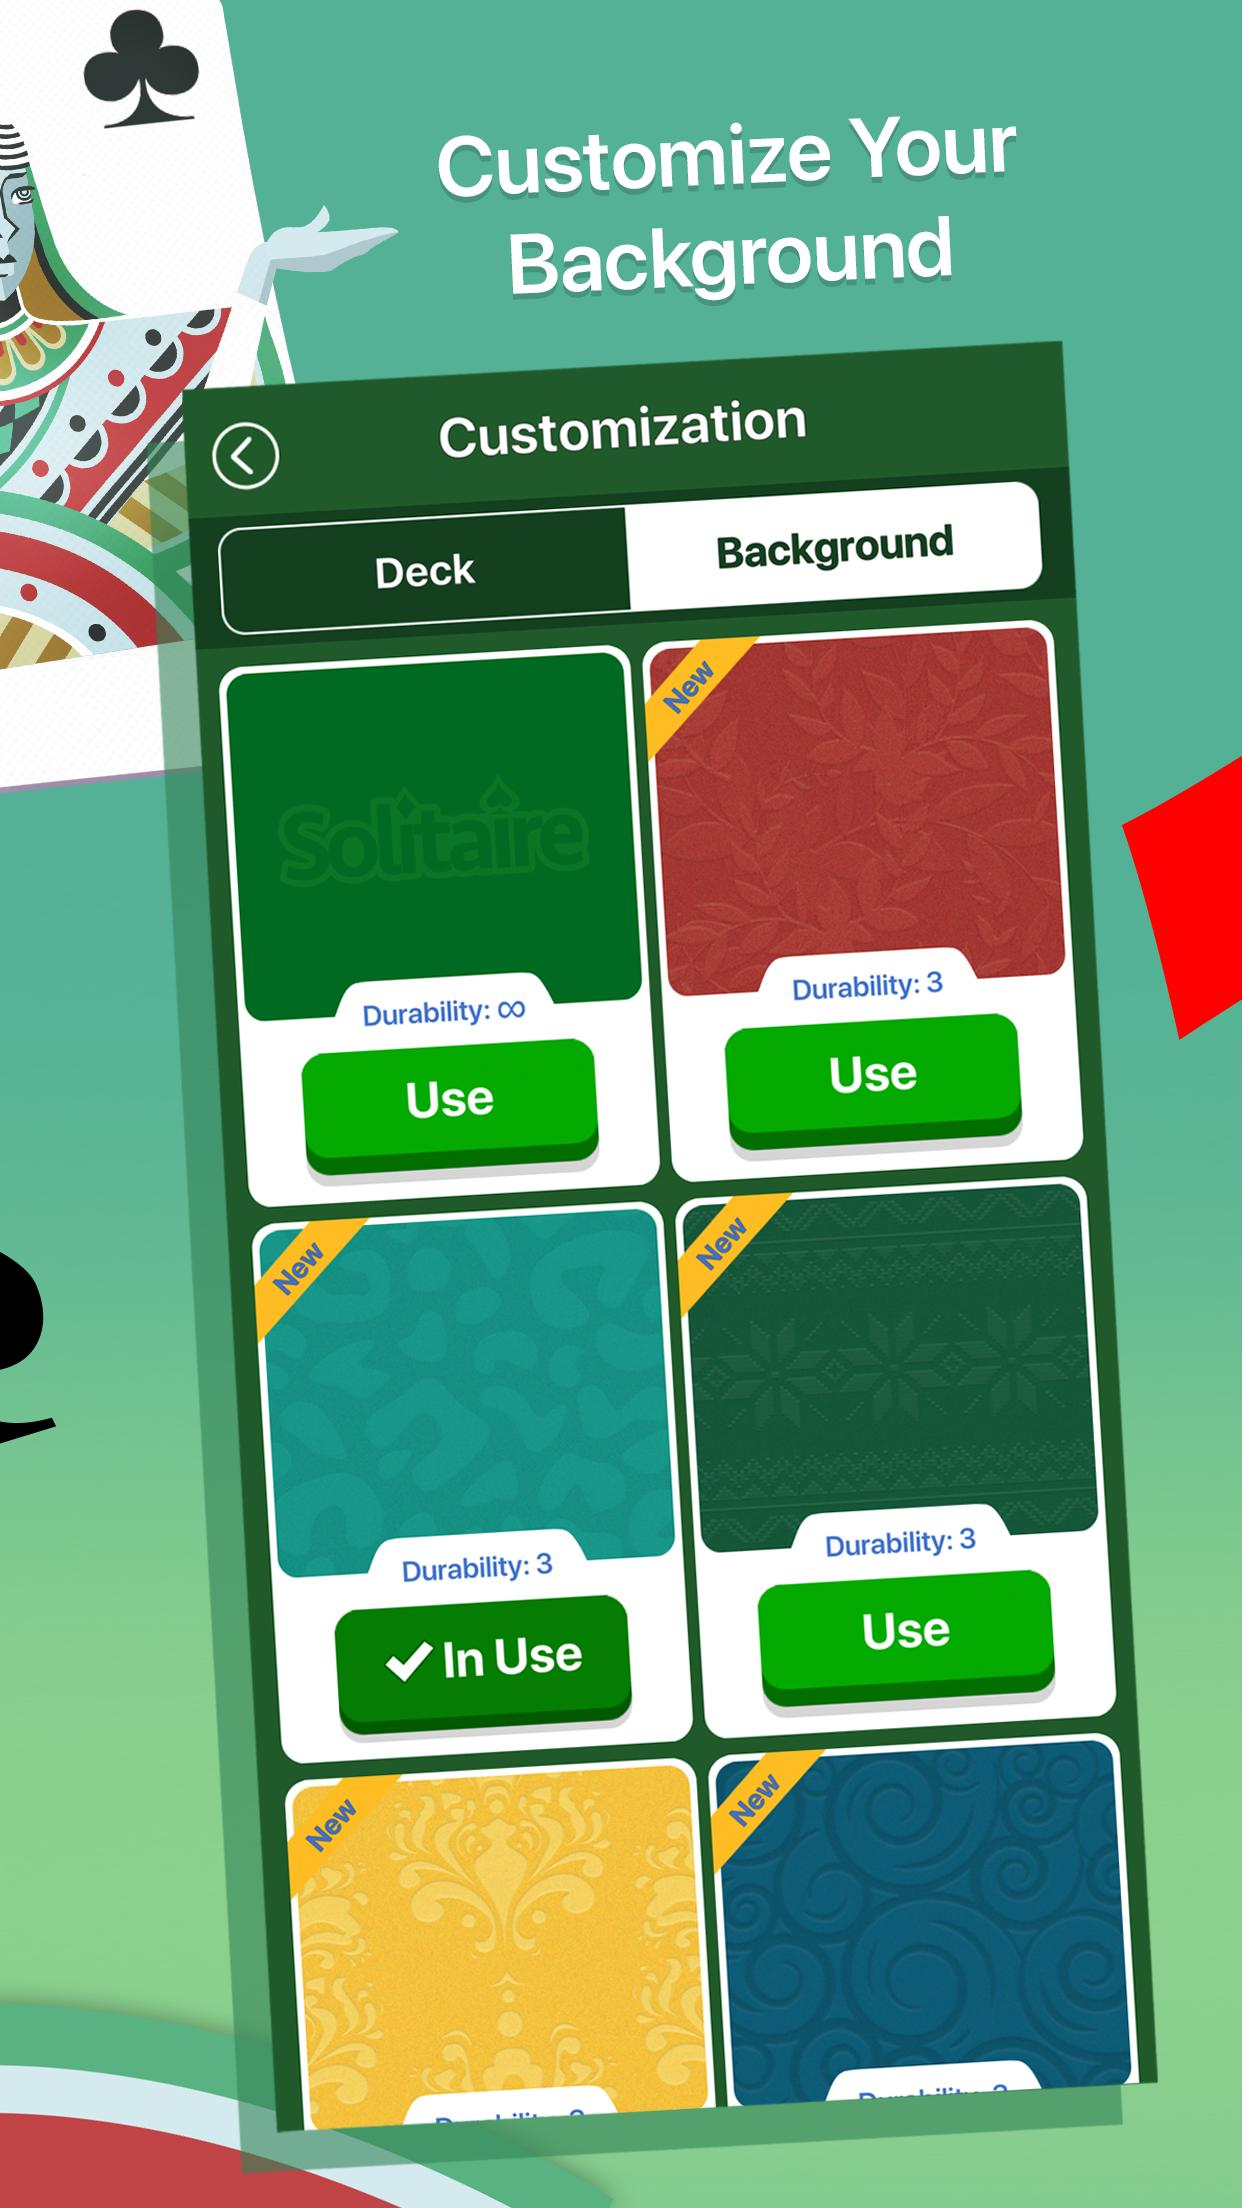 Solitaire 8.4.1 Screenshot 19